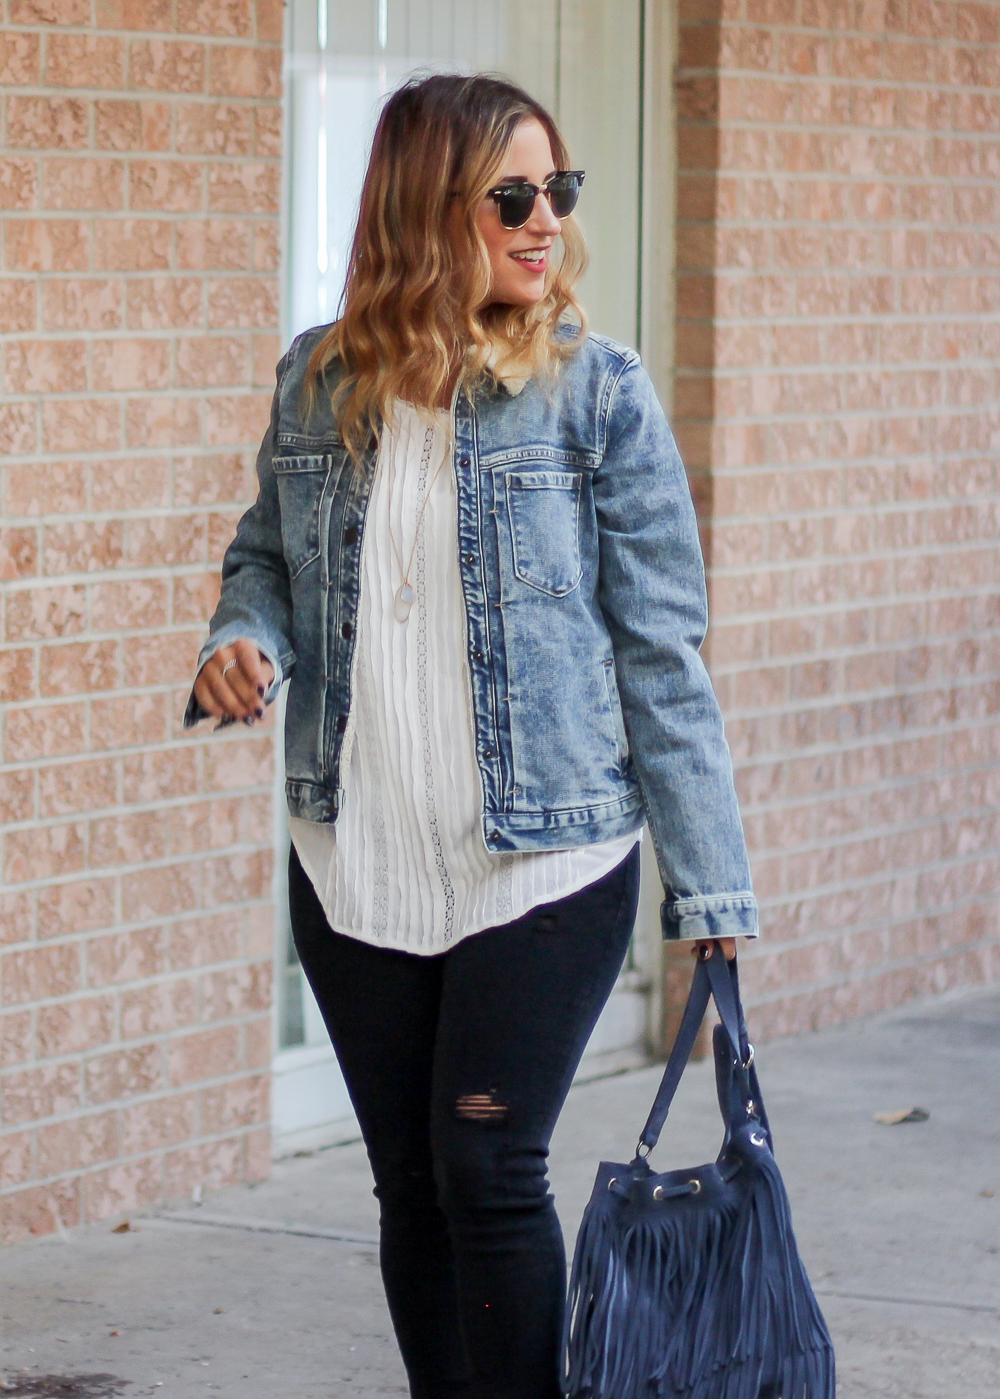 Gap 1969 denim sherpa jacket, worn by Toronto fashion blogger, Jackie Goldhar, from Something About That